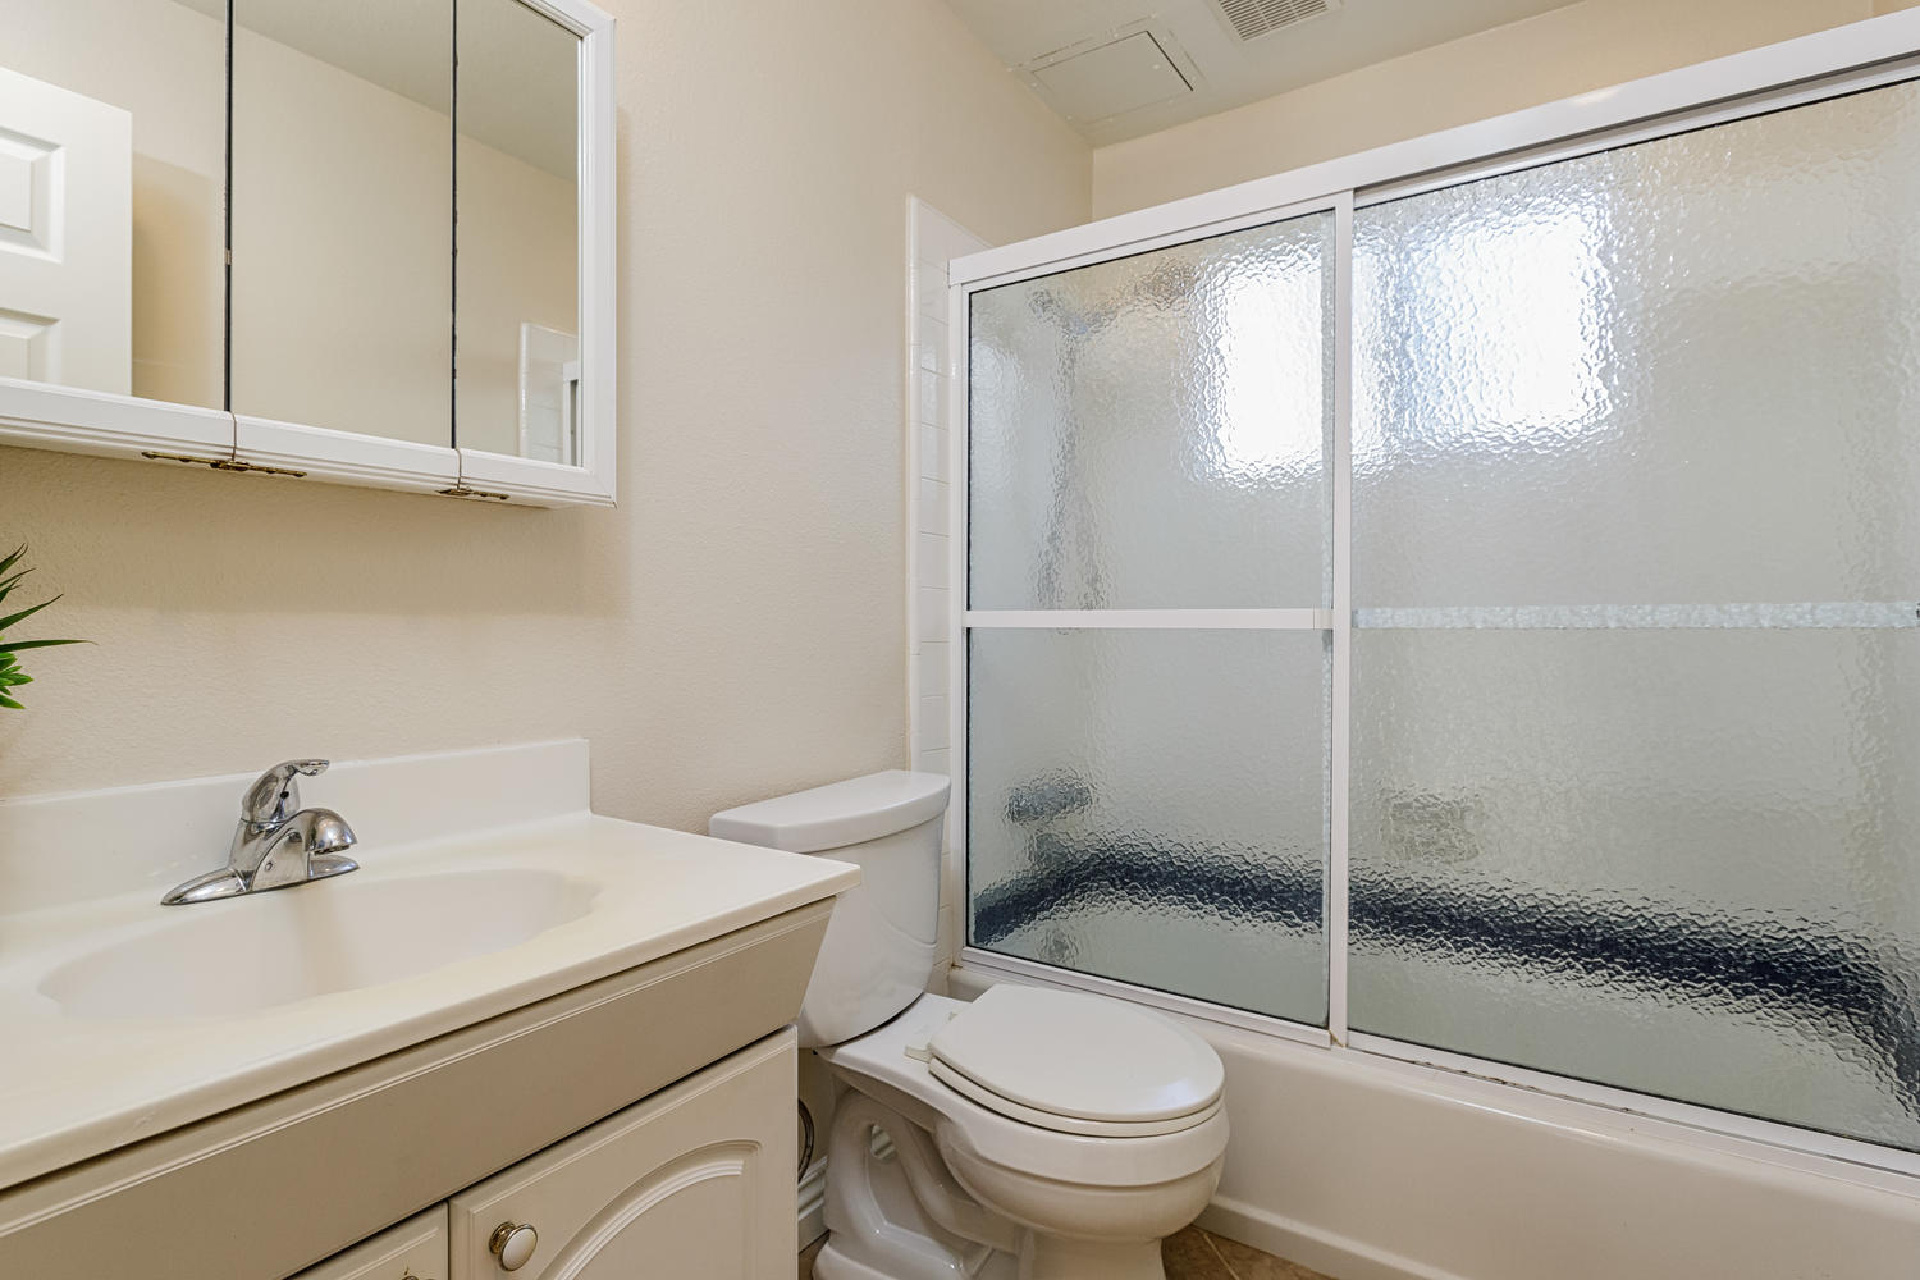 http://addressrealestate.com/media/images/blogs/38/2/b_14-1408-ocean-dr-oxnard-ca-93035-mls-size-019-28-bathroom-2-1500x1000-72dpi.jpg